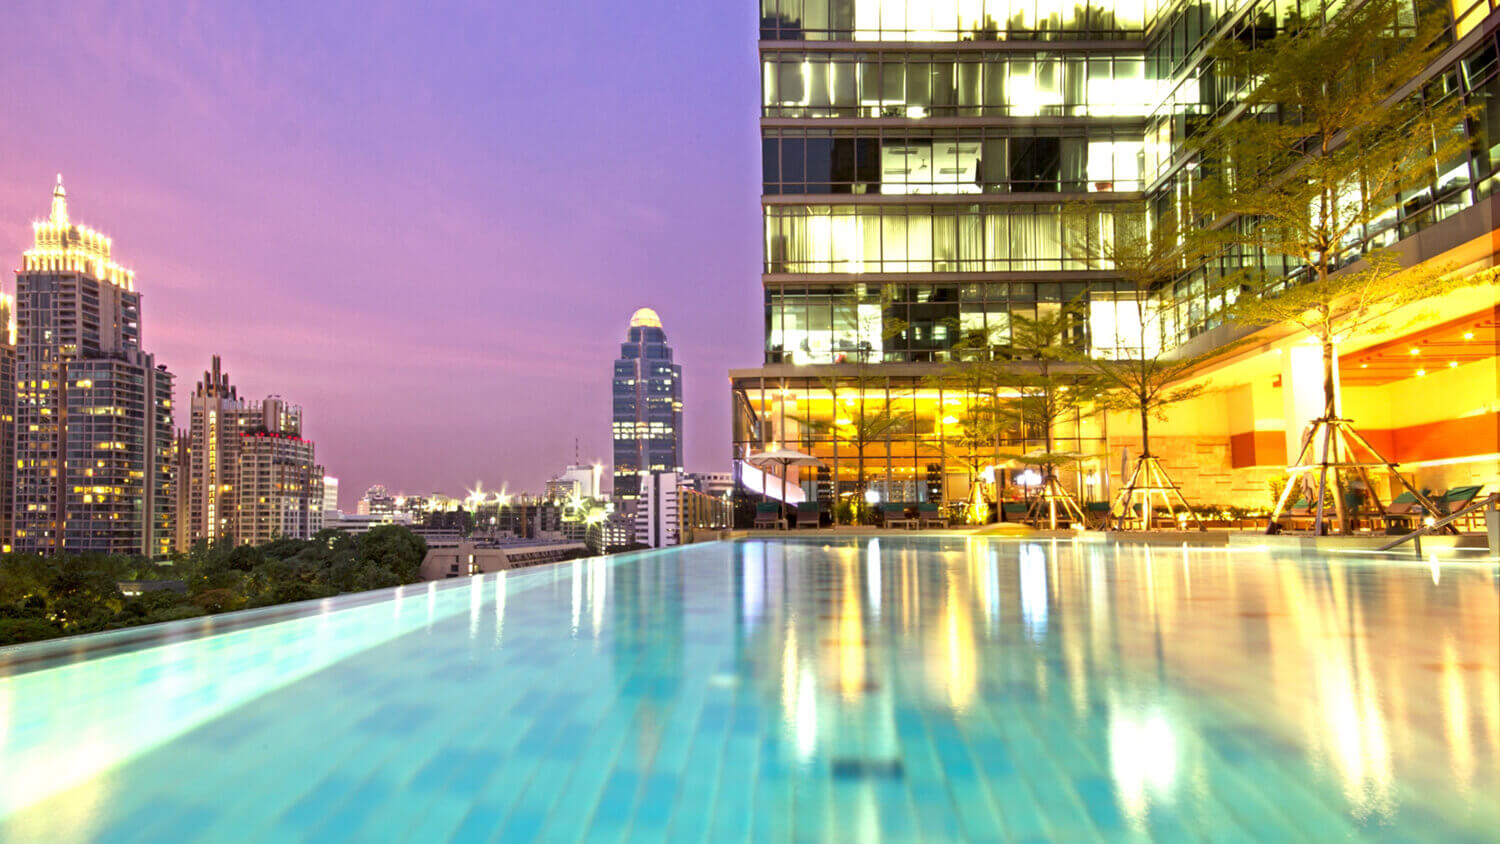 Sivatel hotel bangkok next 2 skytrain official web for Hotel bangkok